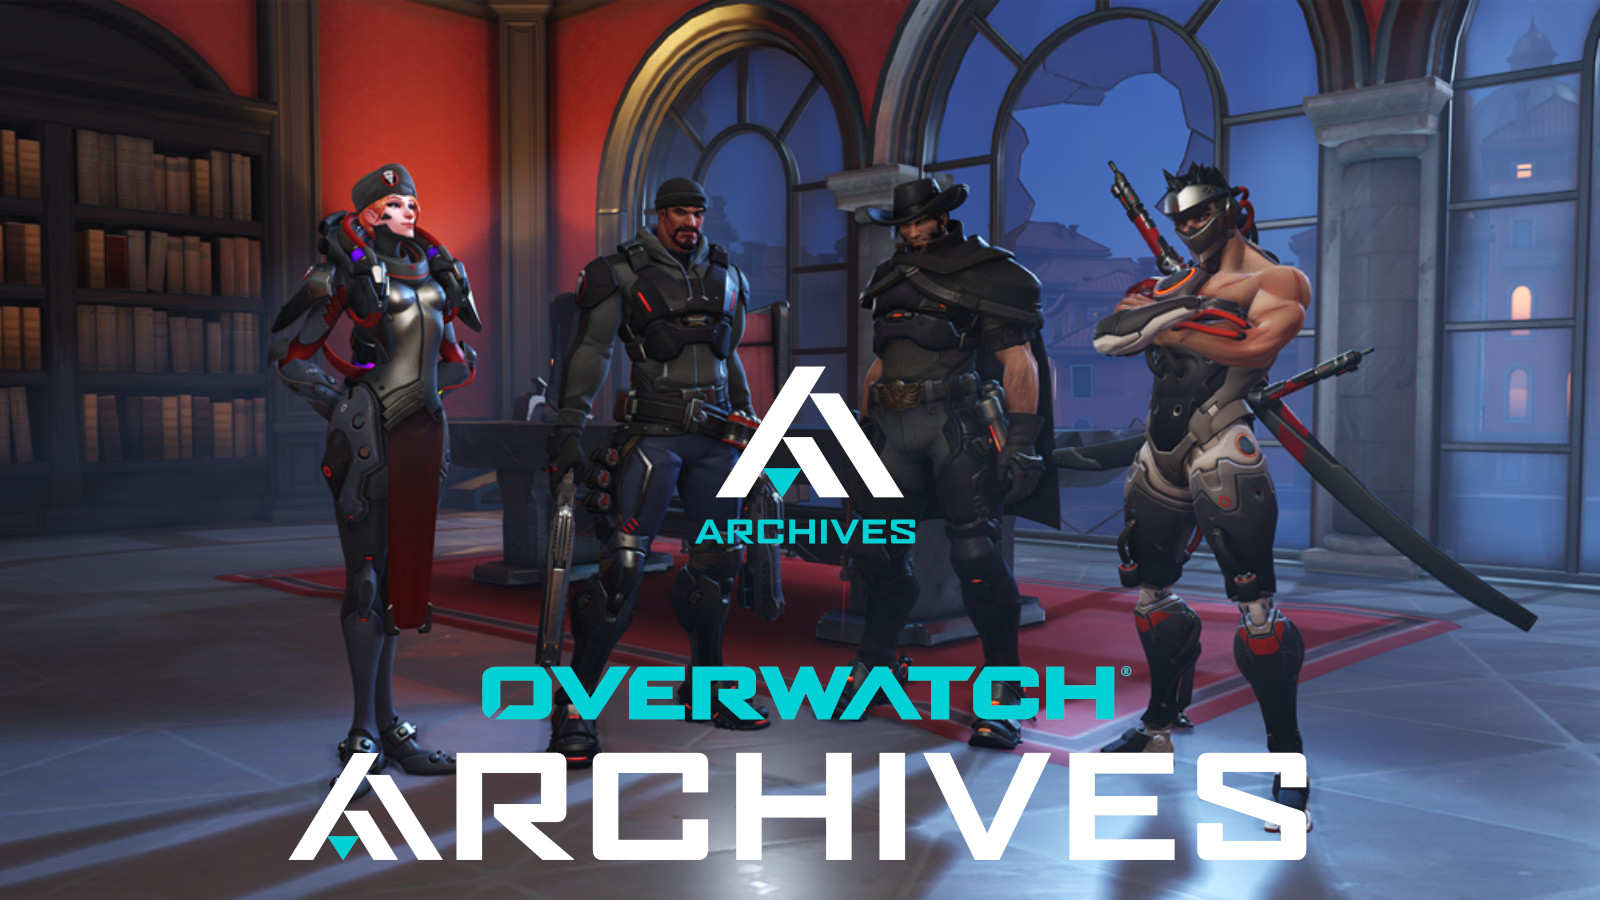 Overwatch archives event 2021